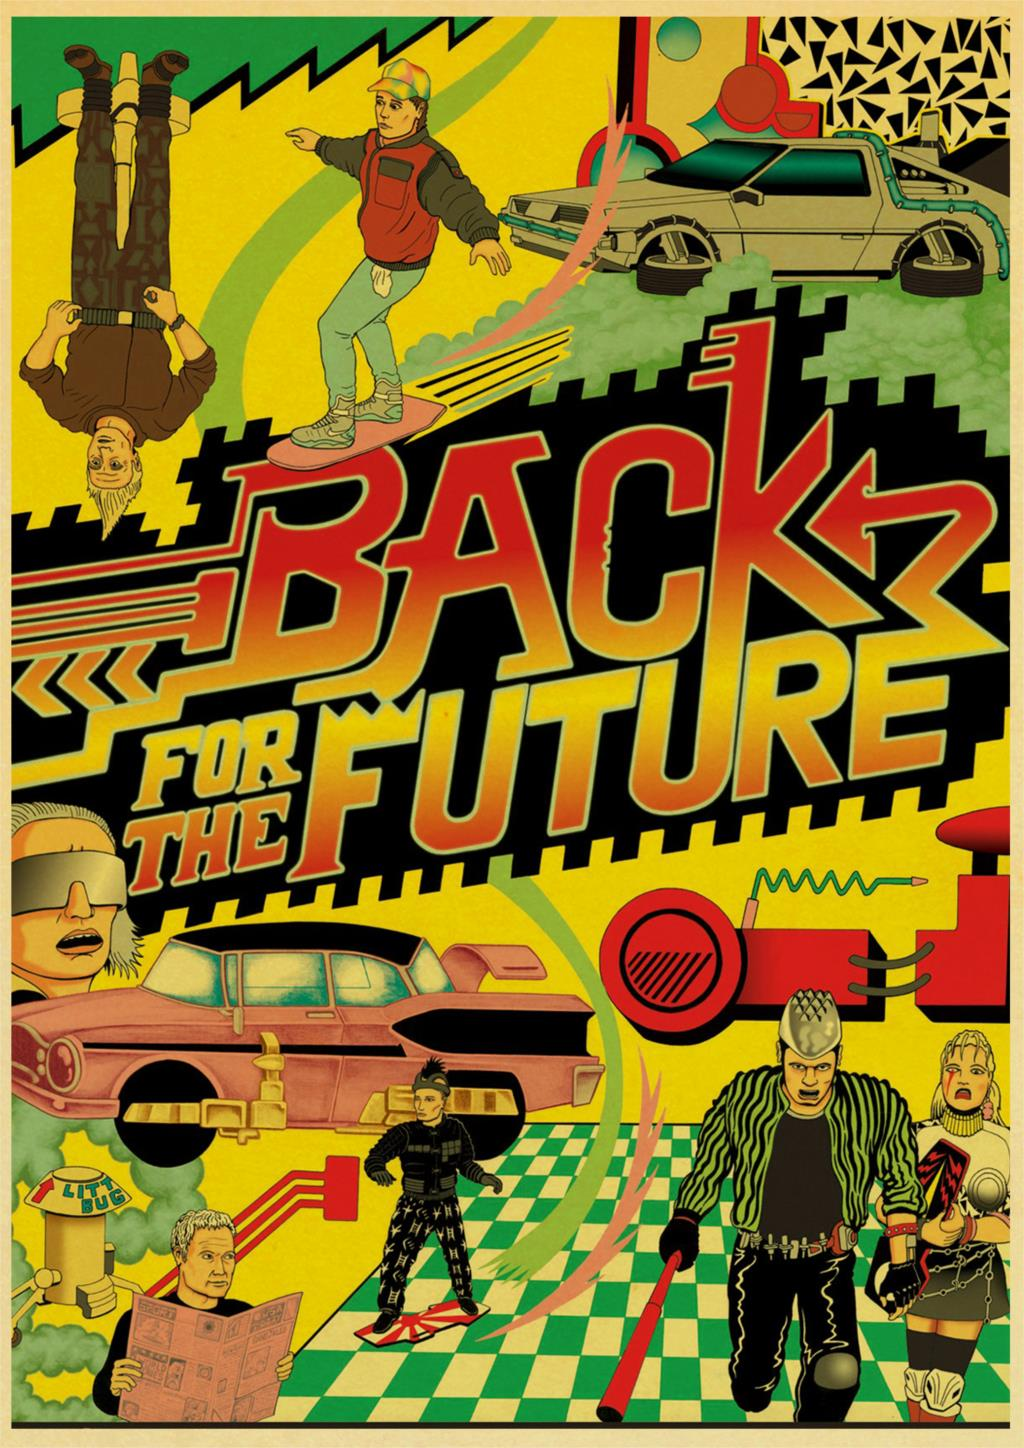 HTB1.Dd8OhnaK1RjSZFBq6AW7VXab Classic Movie Back To The Future Vintage Posters For Home/Bar/Living Decor kraft Paper high quality poster wall sticker